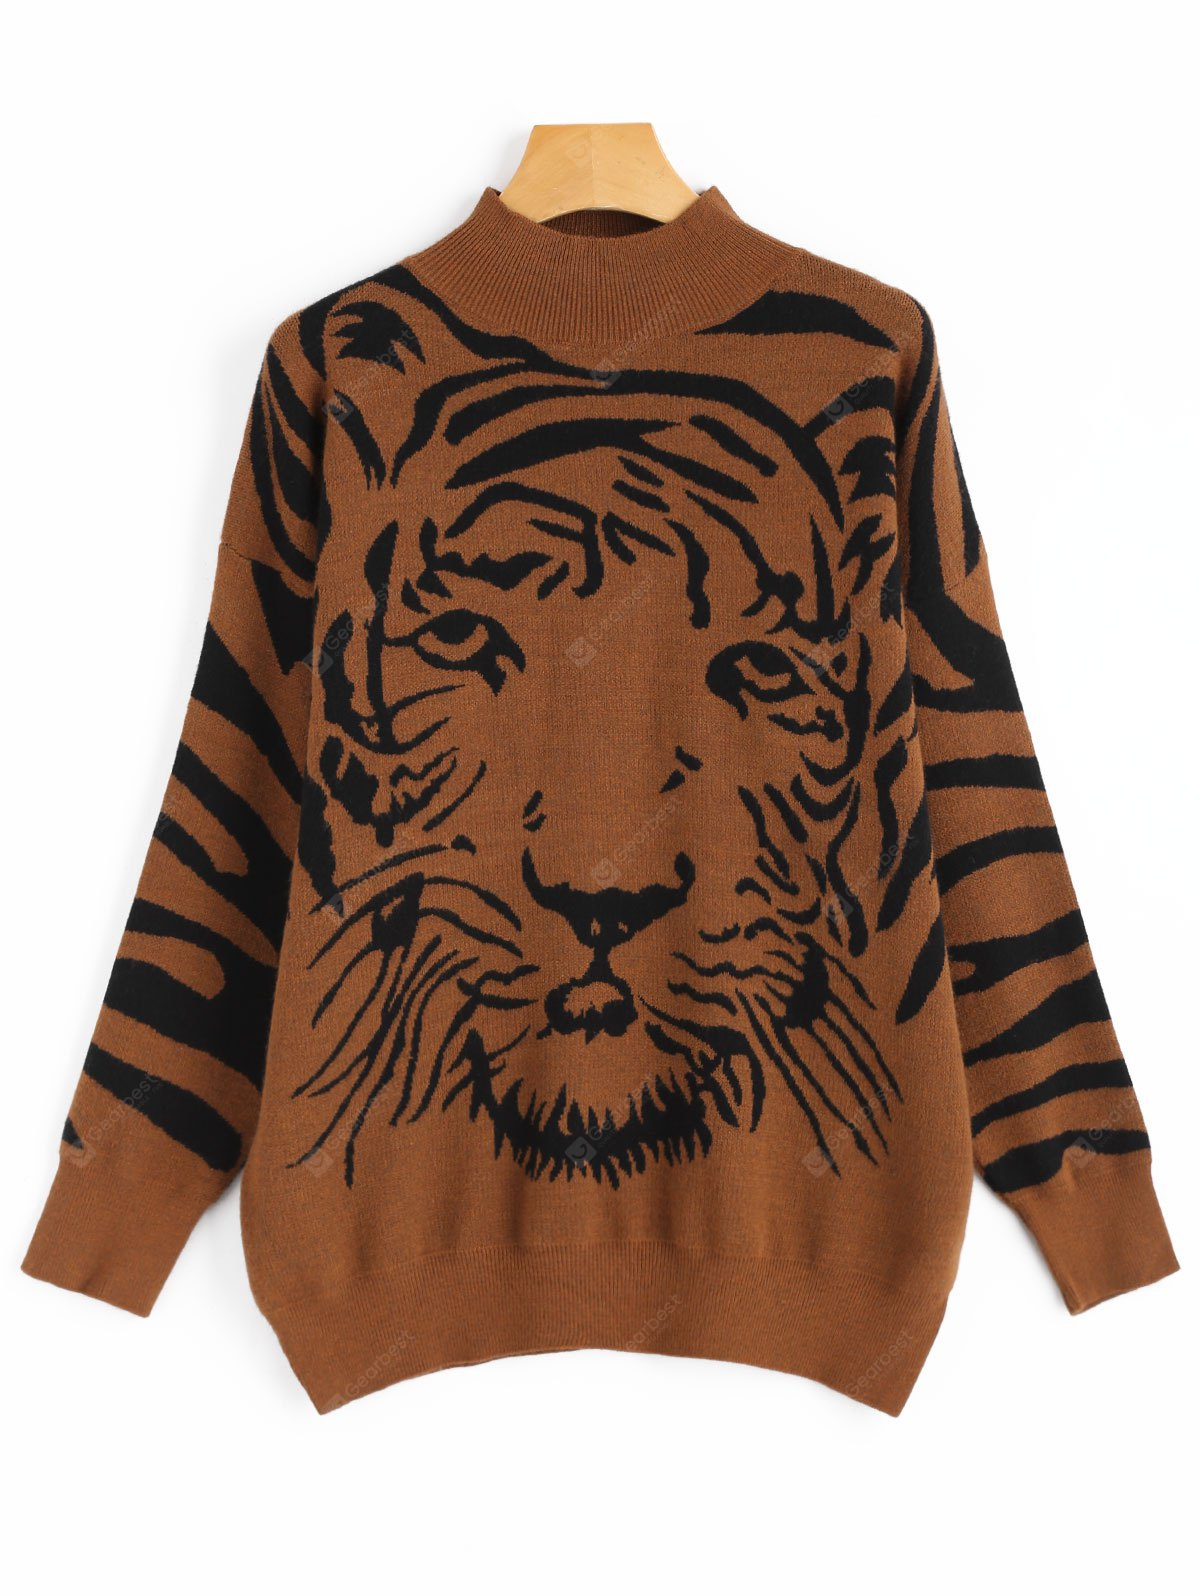 Tiger Face Graphic Jersey de cuello alto